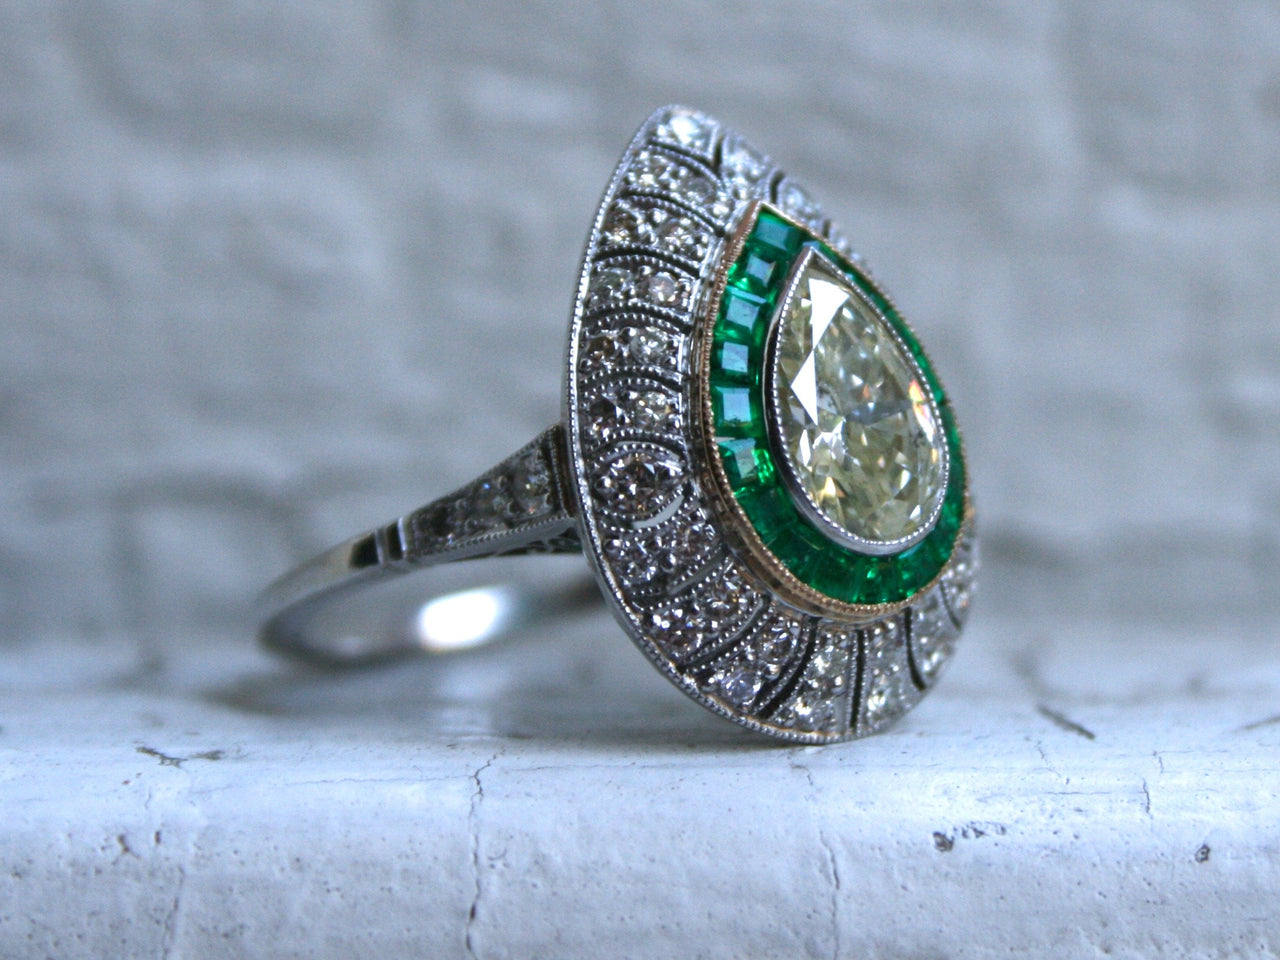 Stunning Pear Cut Diamond and Emerald Halo Ring Engagement Ring in Platinum - 2.45ct.